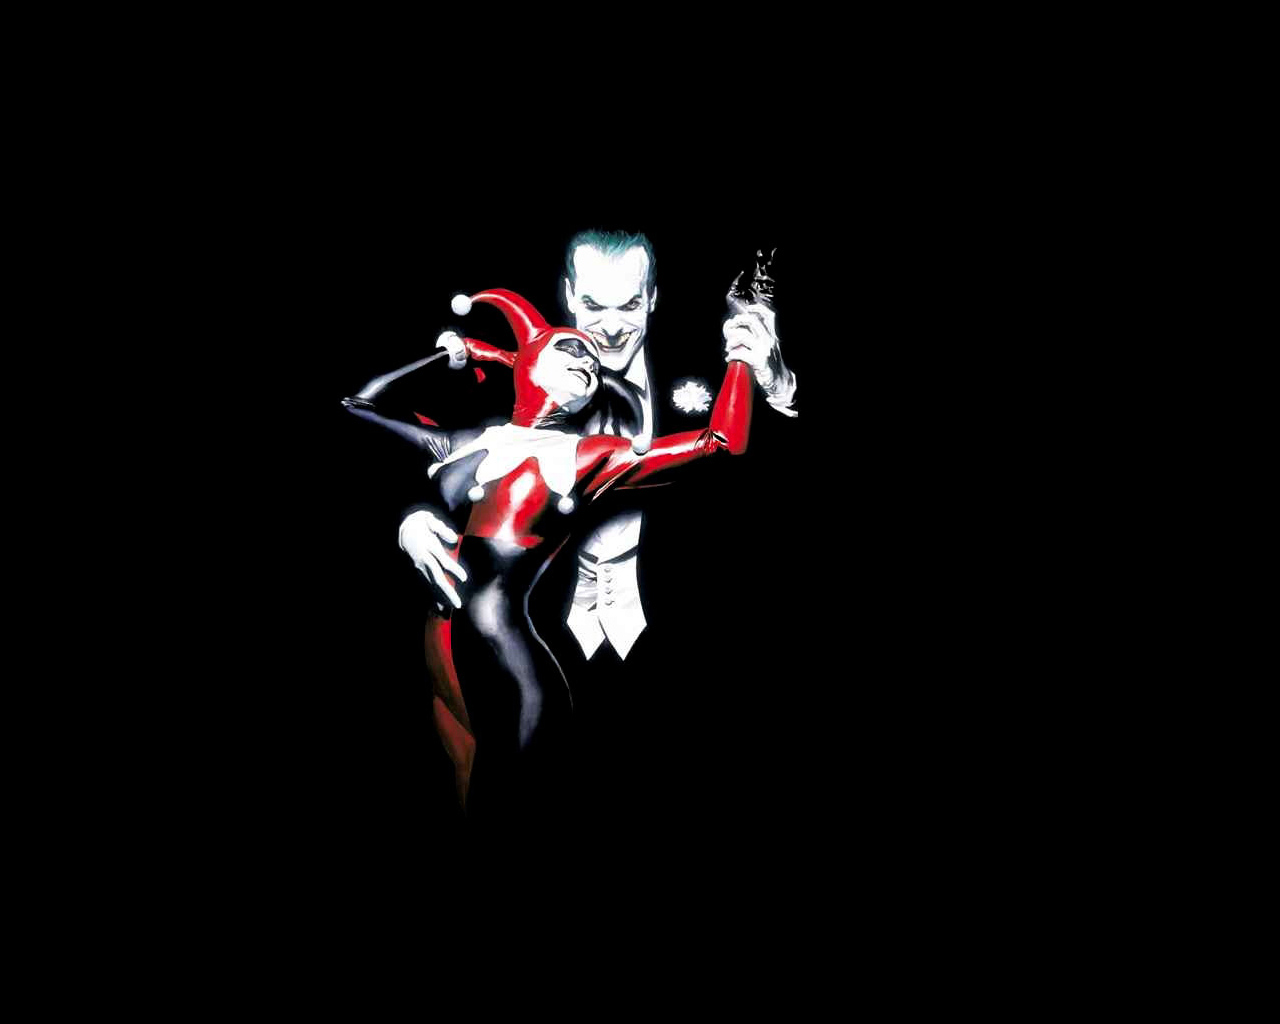 337 Harley Quinn HD Wallpapers | Backgrounds - Wallpaper Abyss